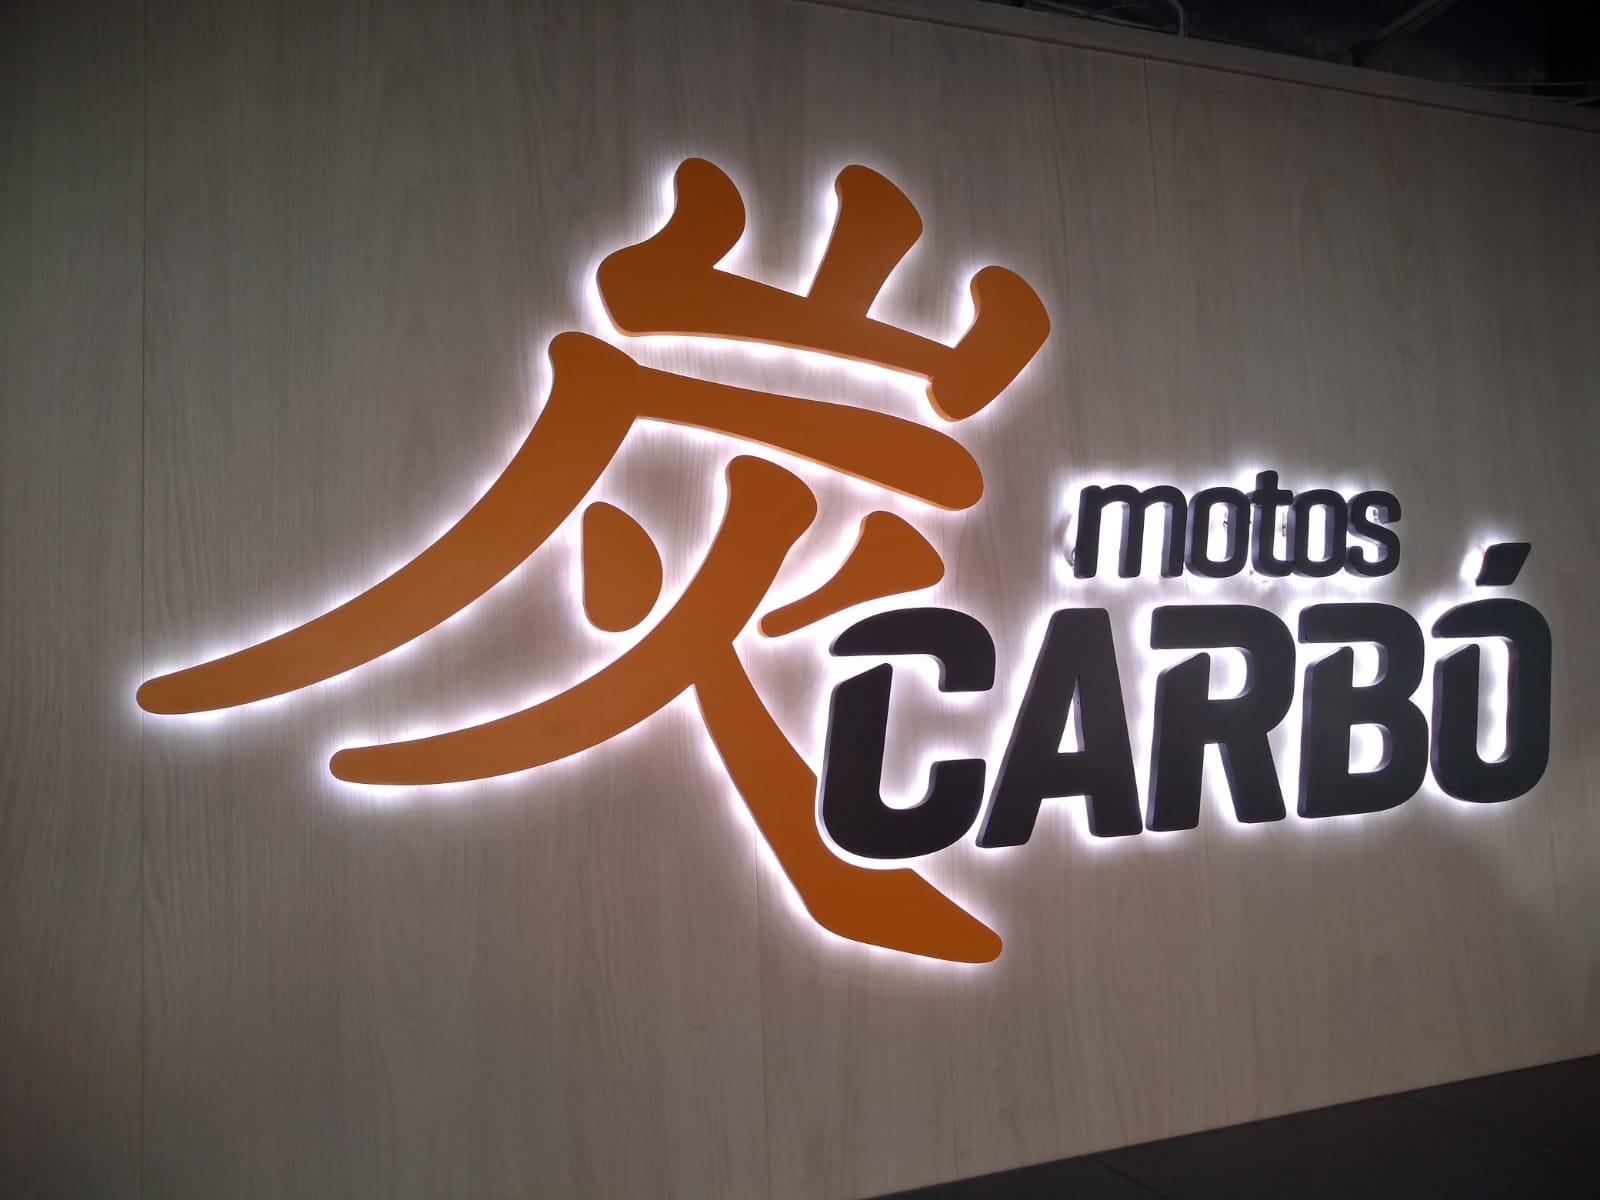 CARBO ROTULO